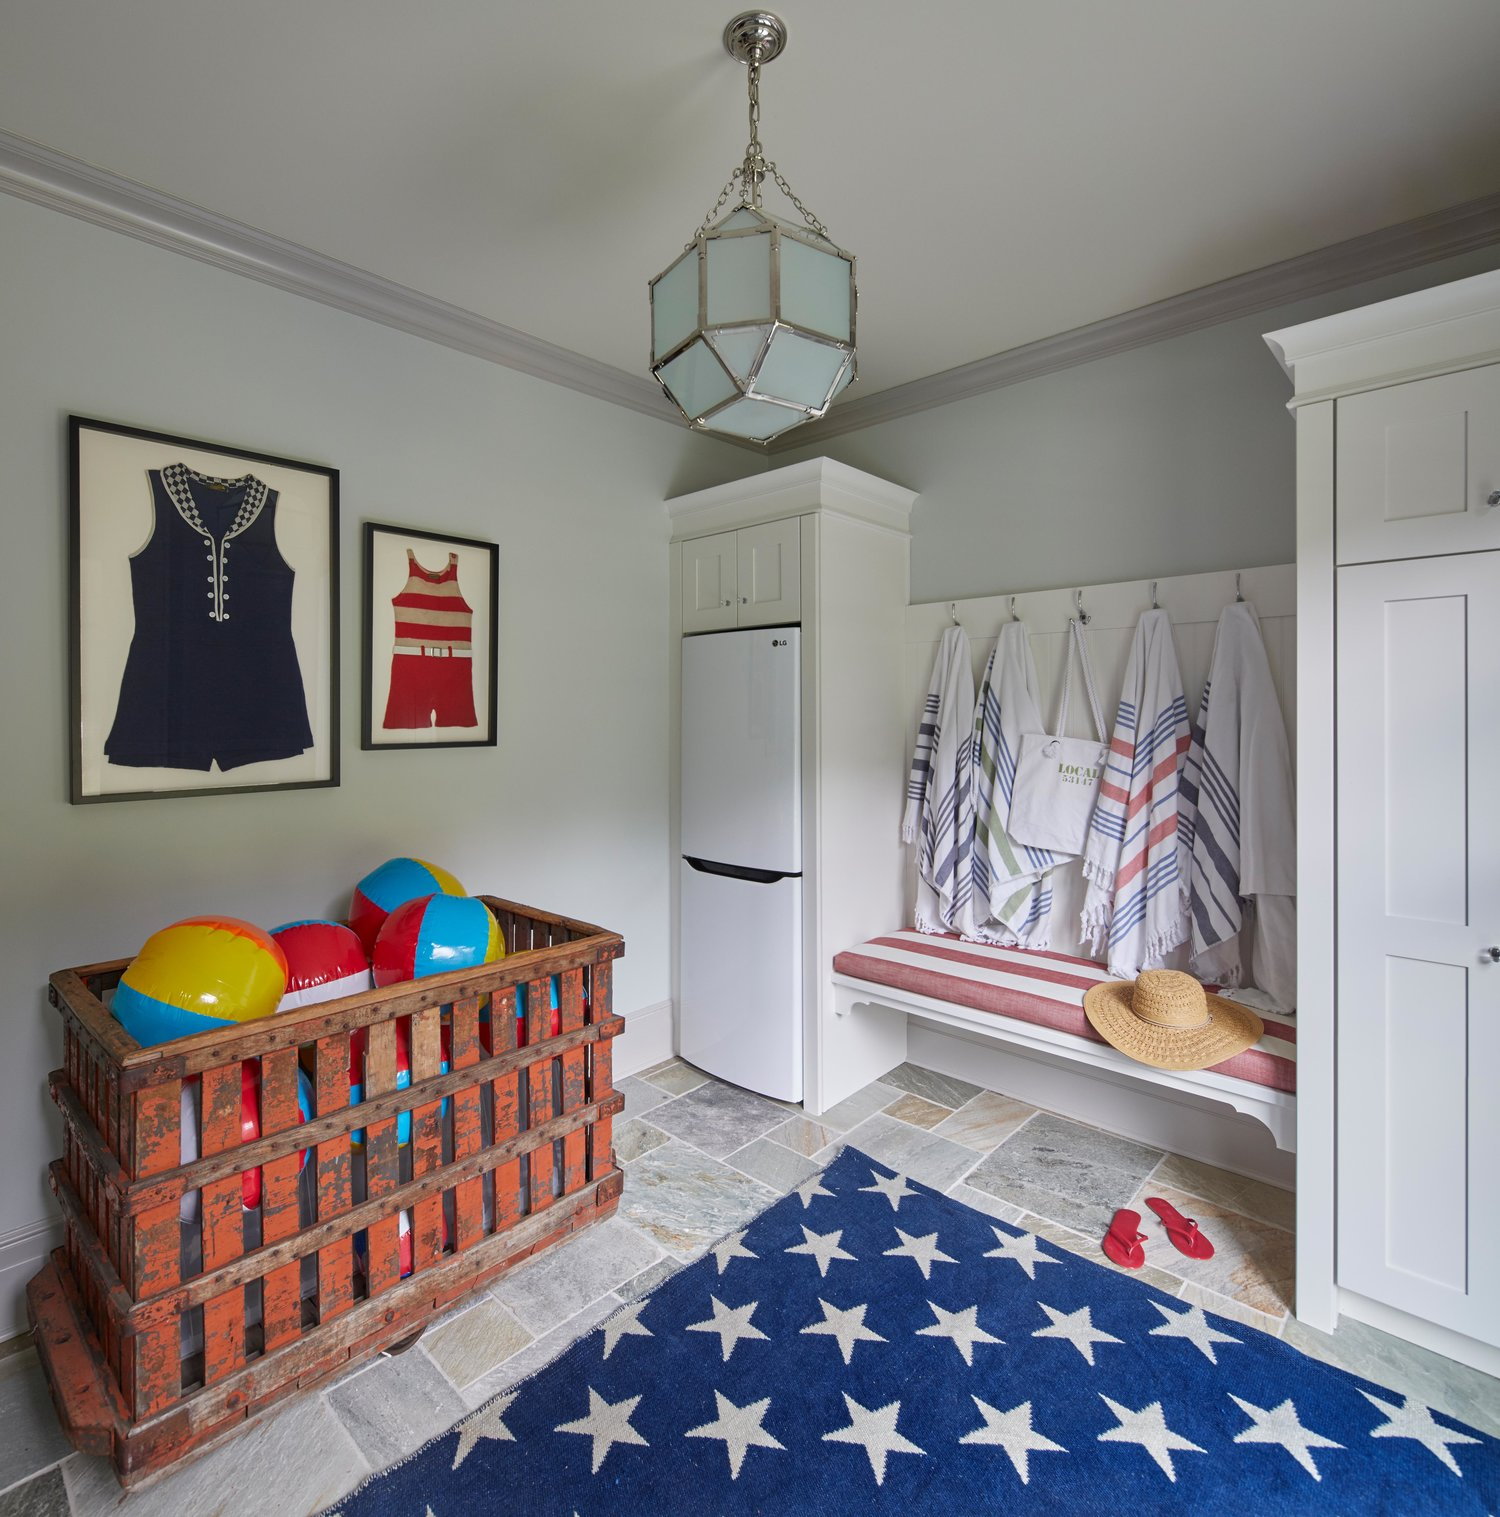 Cheerful red, white and blue pool cabana or mud room with star rug. Come see more interior design inspiration from Elizabeth Drake. Photo by Werner Straube. #interiordesign #classicdesign #traditionaldecor #housetour #elizabethdrake